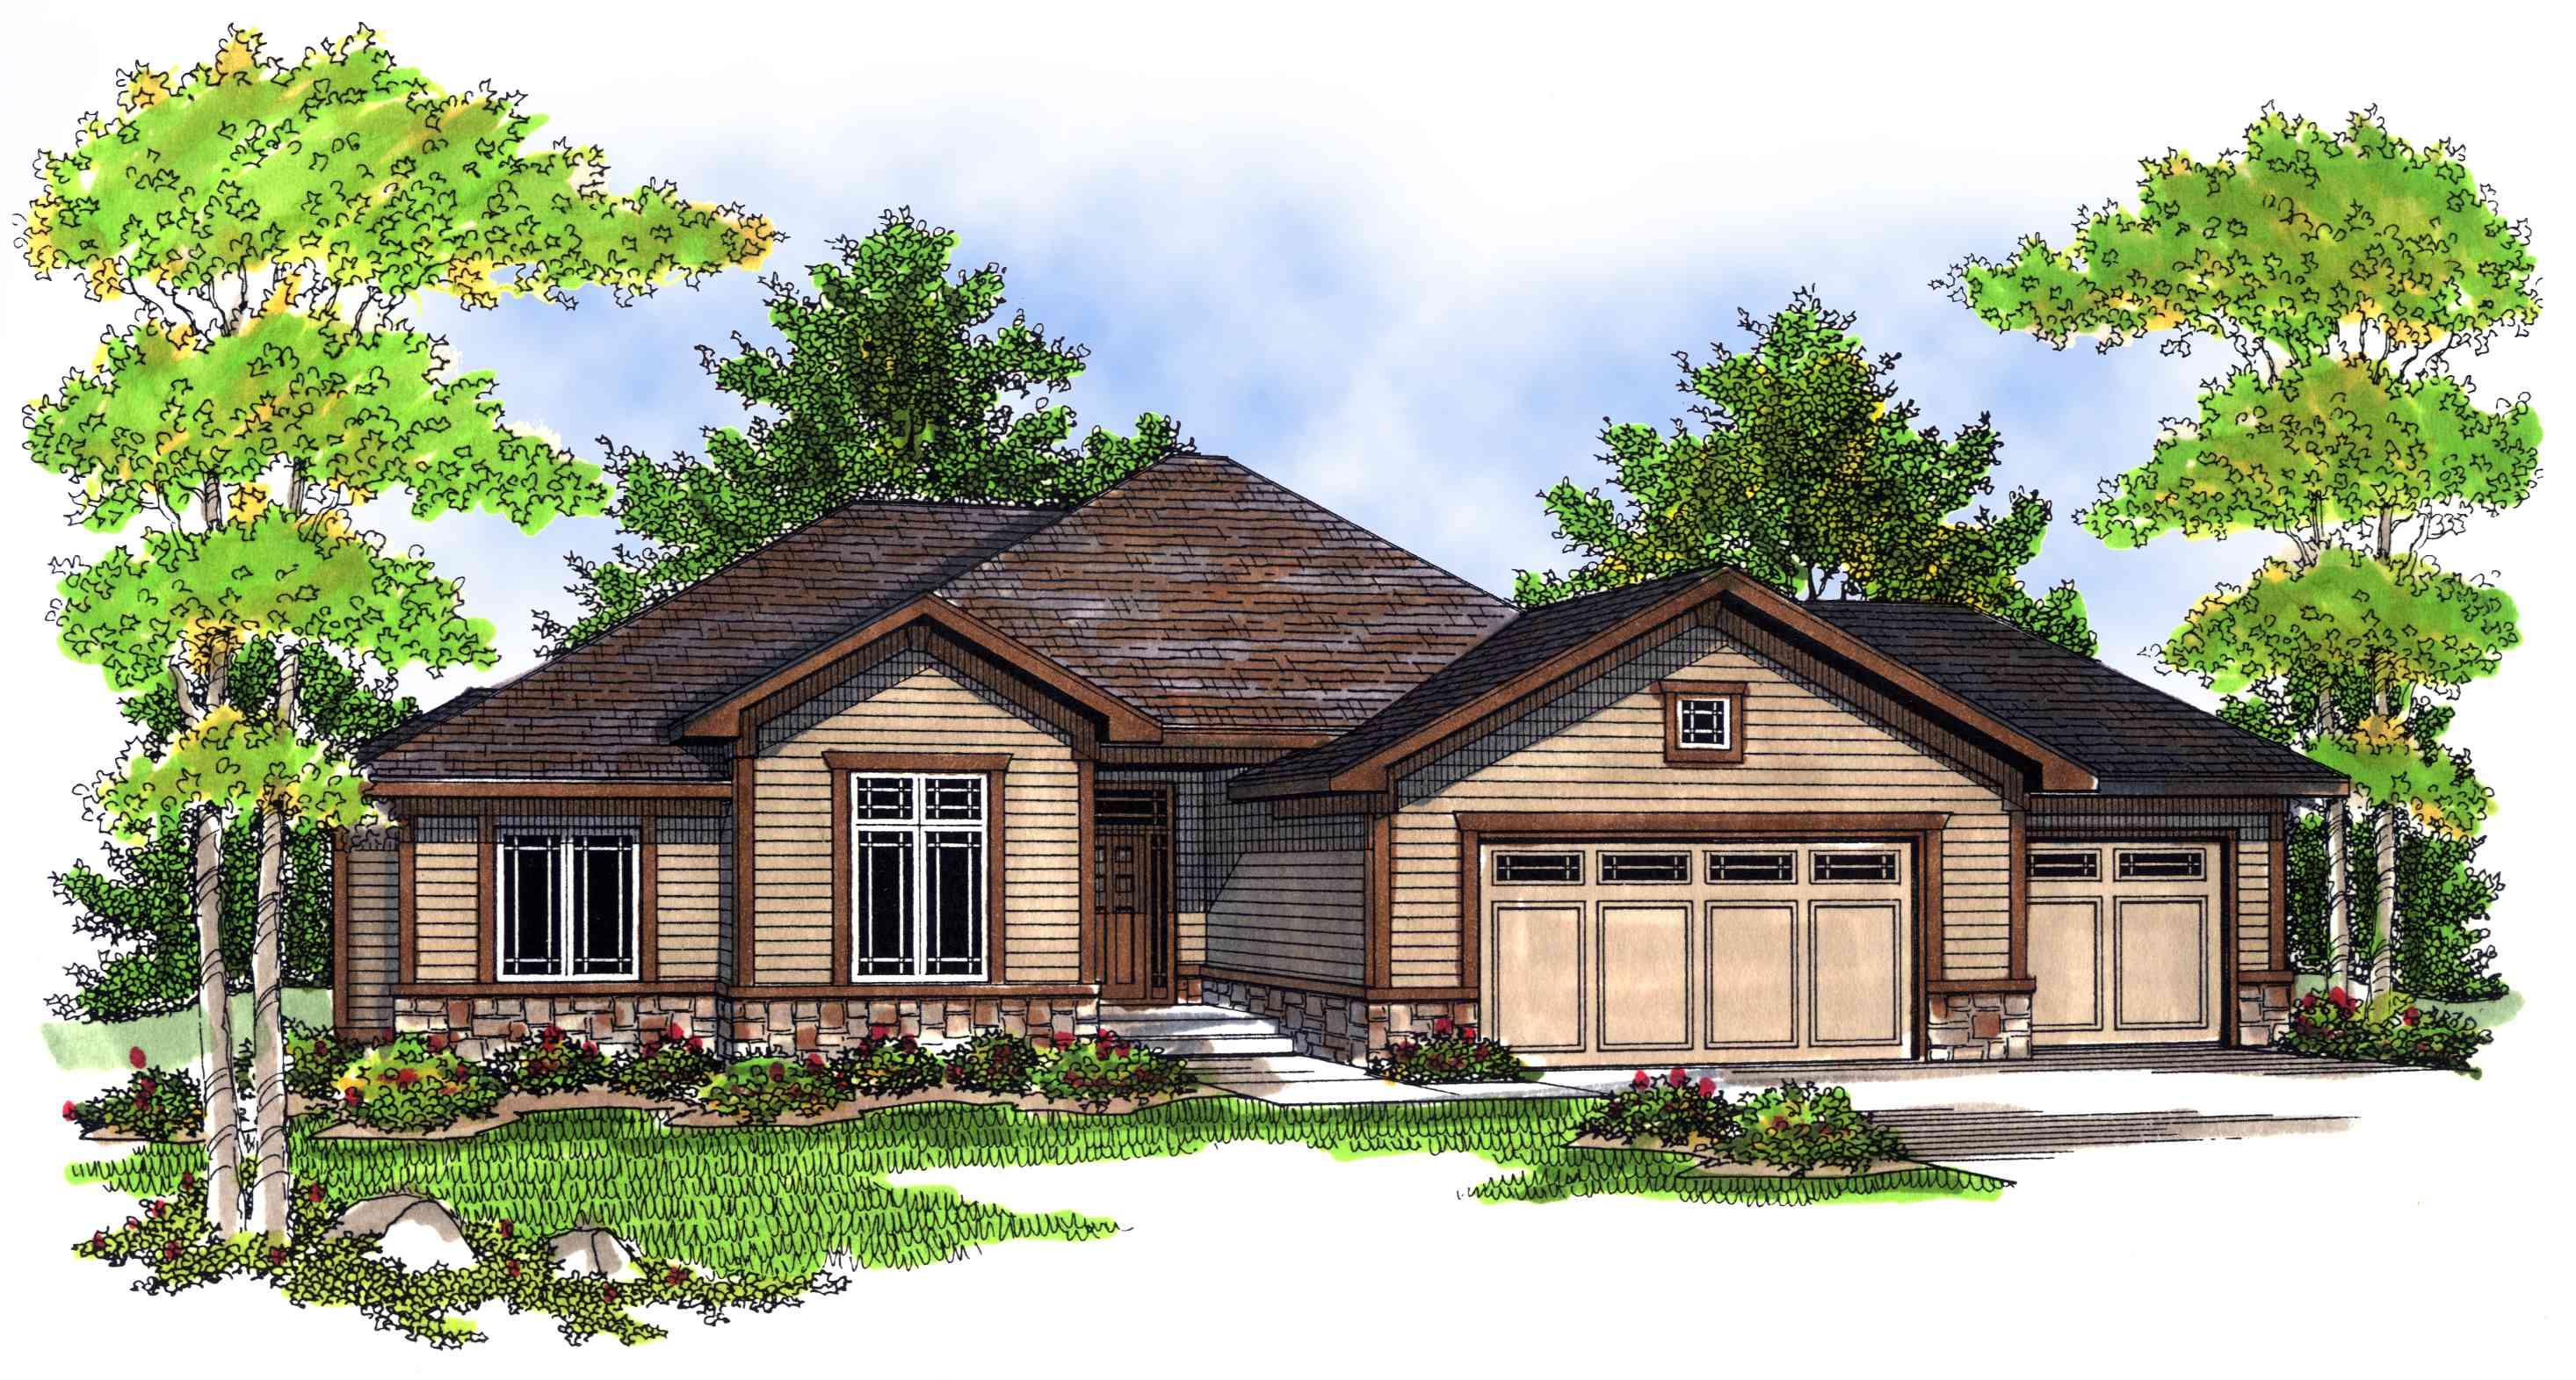 Traditional home plan with open floor plan 89338ah for Traditional open floor plans